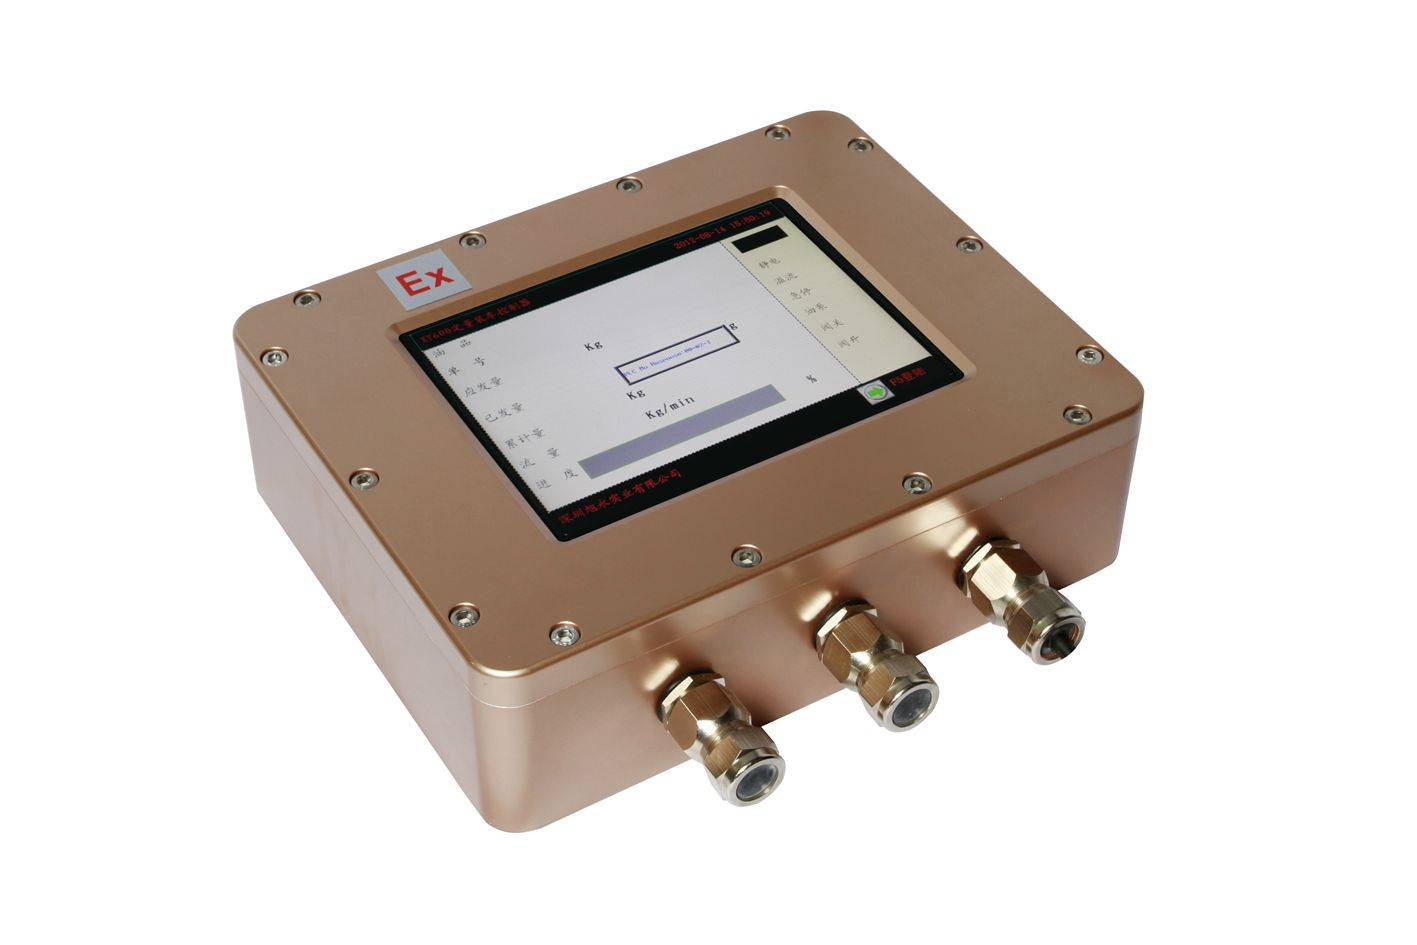 explosion proof oil tank monitor